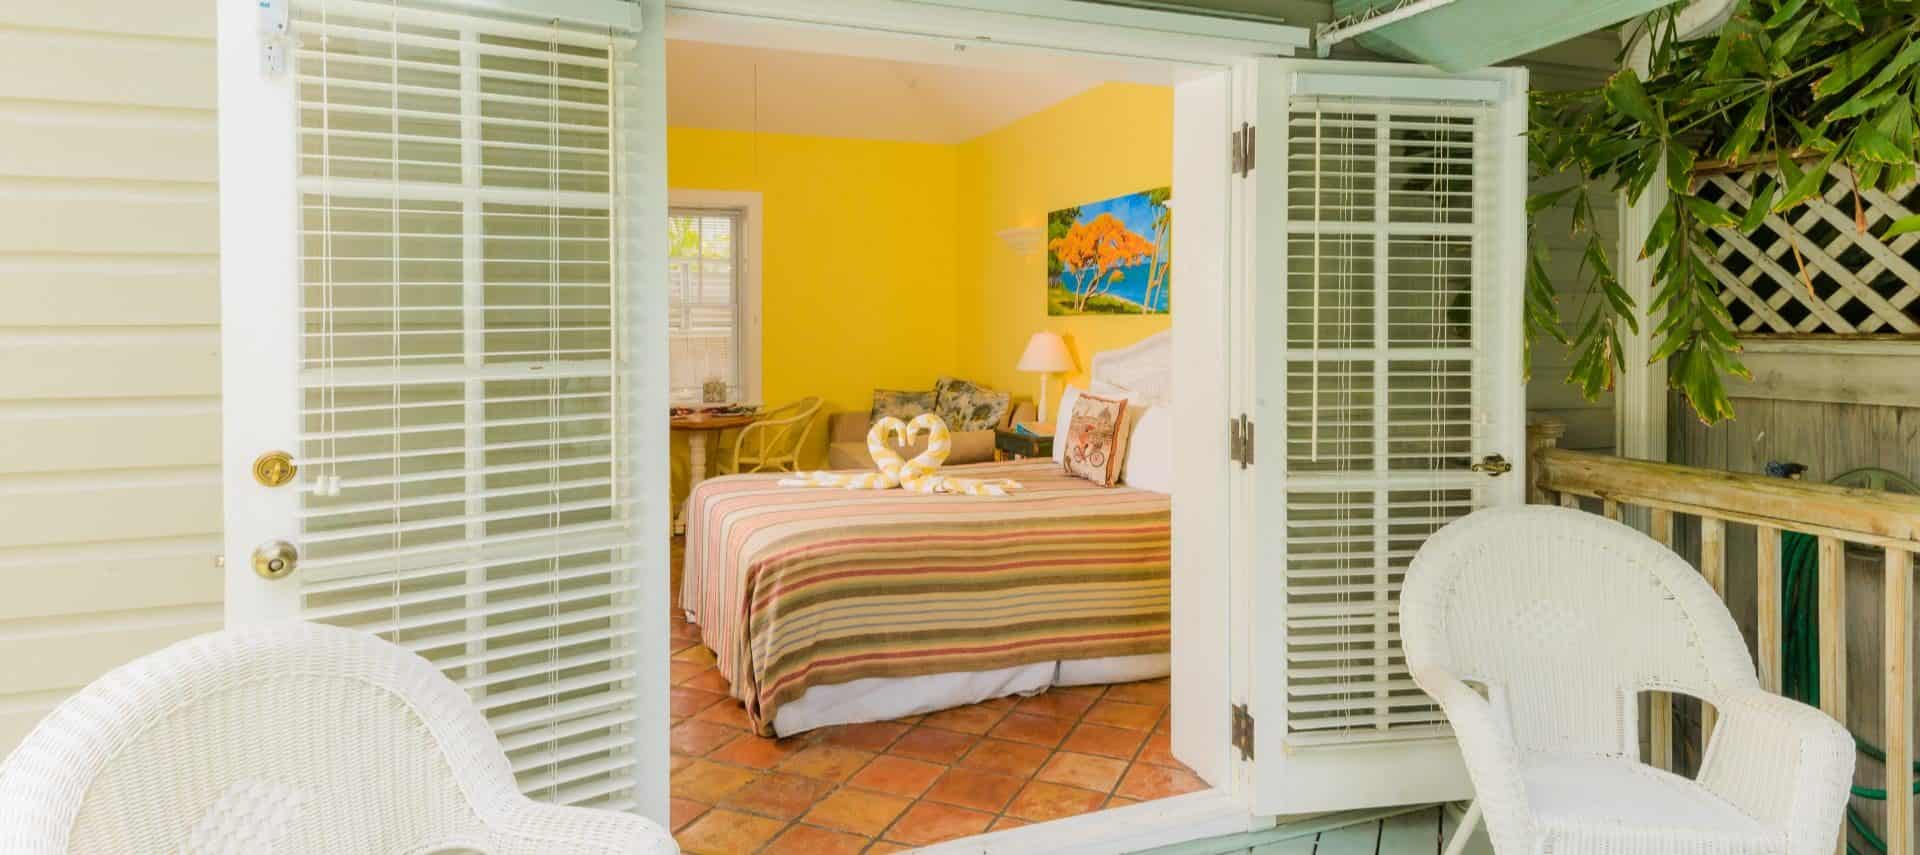 View into bedroom with yellow walls, white trim, terra cotta tile flooring, white wicker headboard, striped blanket, and two white and yellow swan-shaped towels on the bed